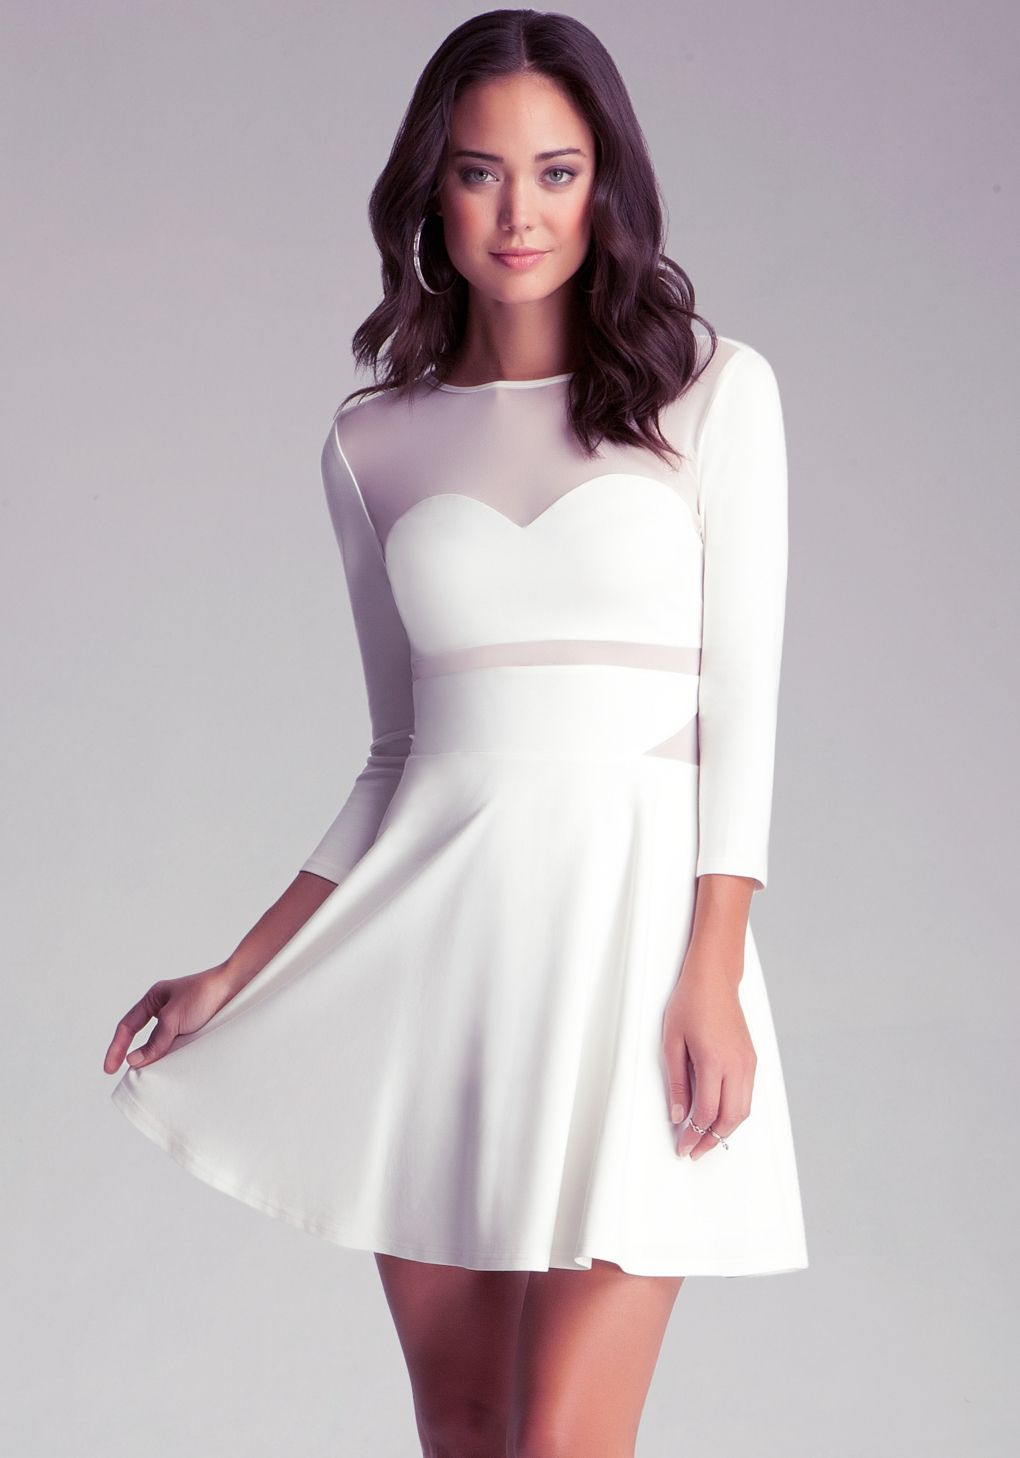 57a744d7e9 Bebe - White Mesh Fit N Flare Dress